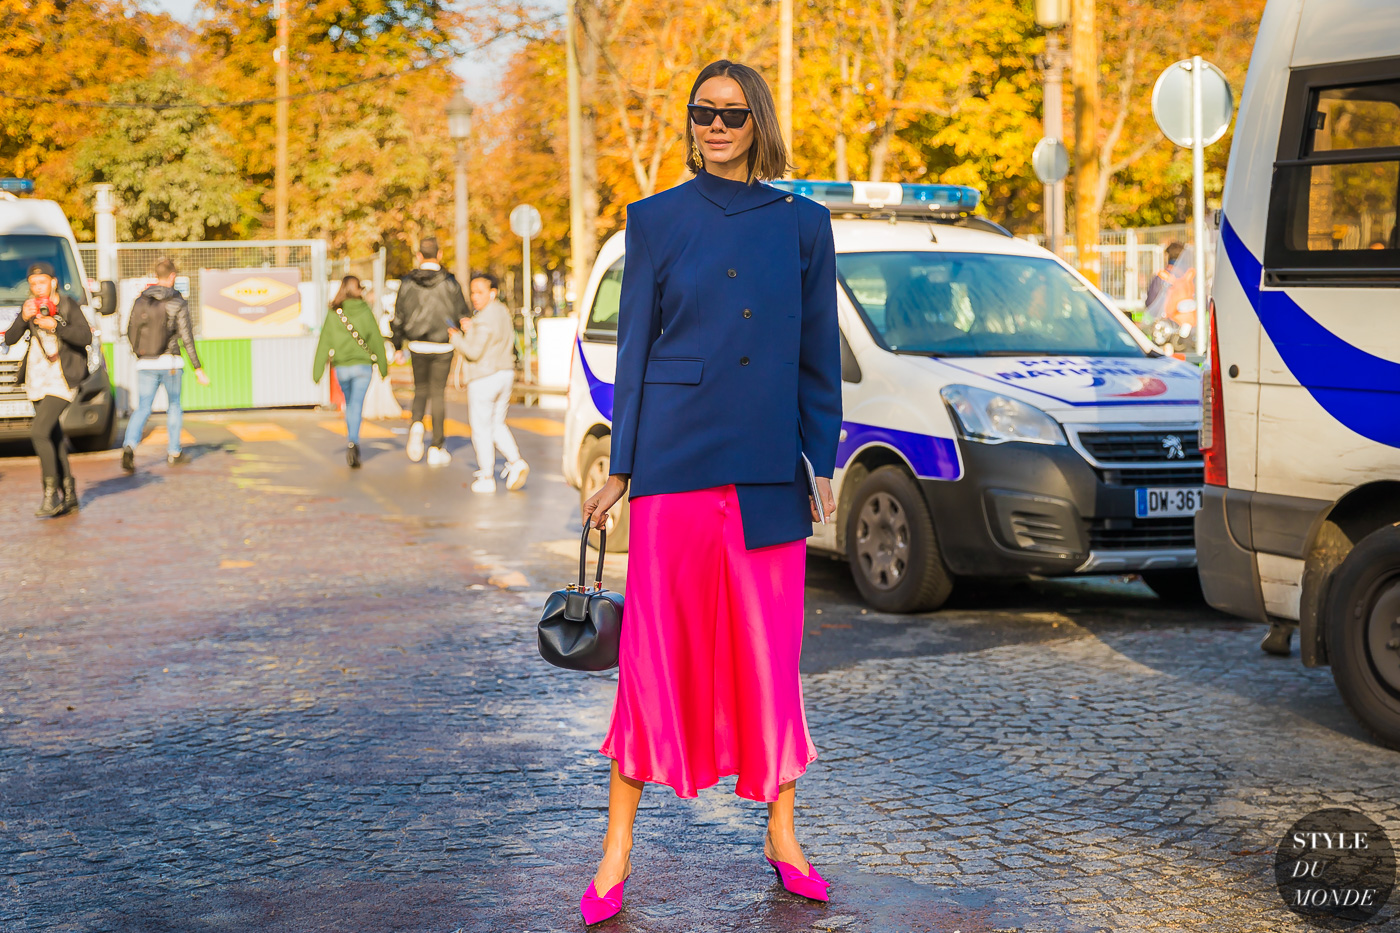 Julie Pelipas by STYLEDUMONDE Street Style Fashion Photography_48A2784